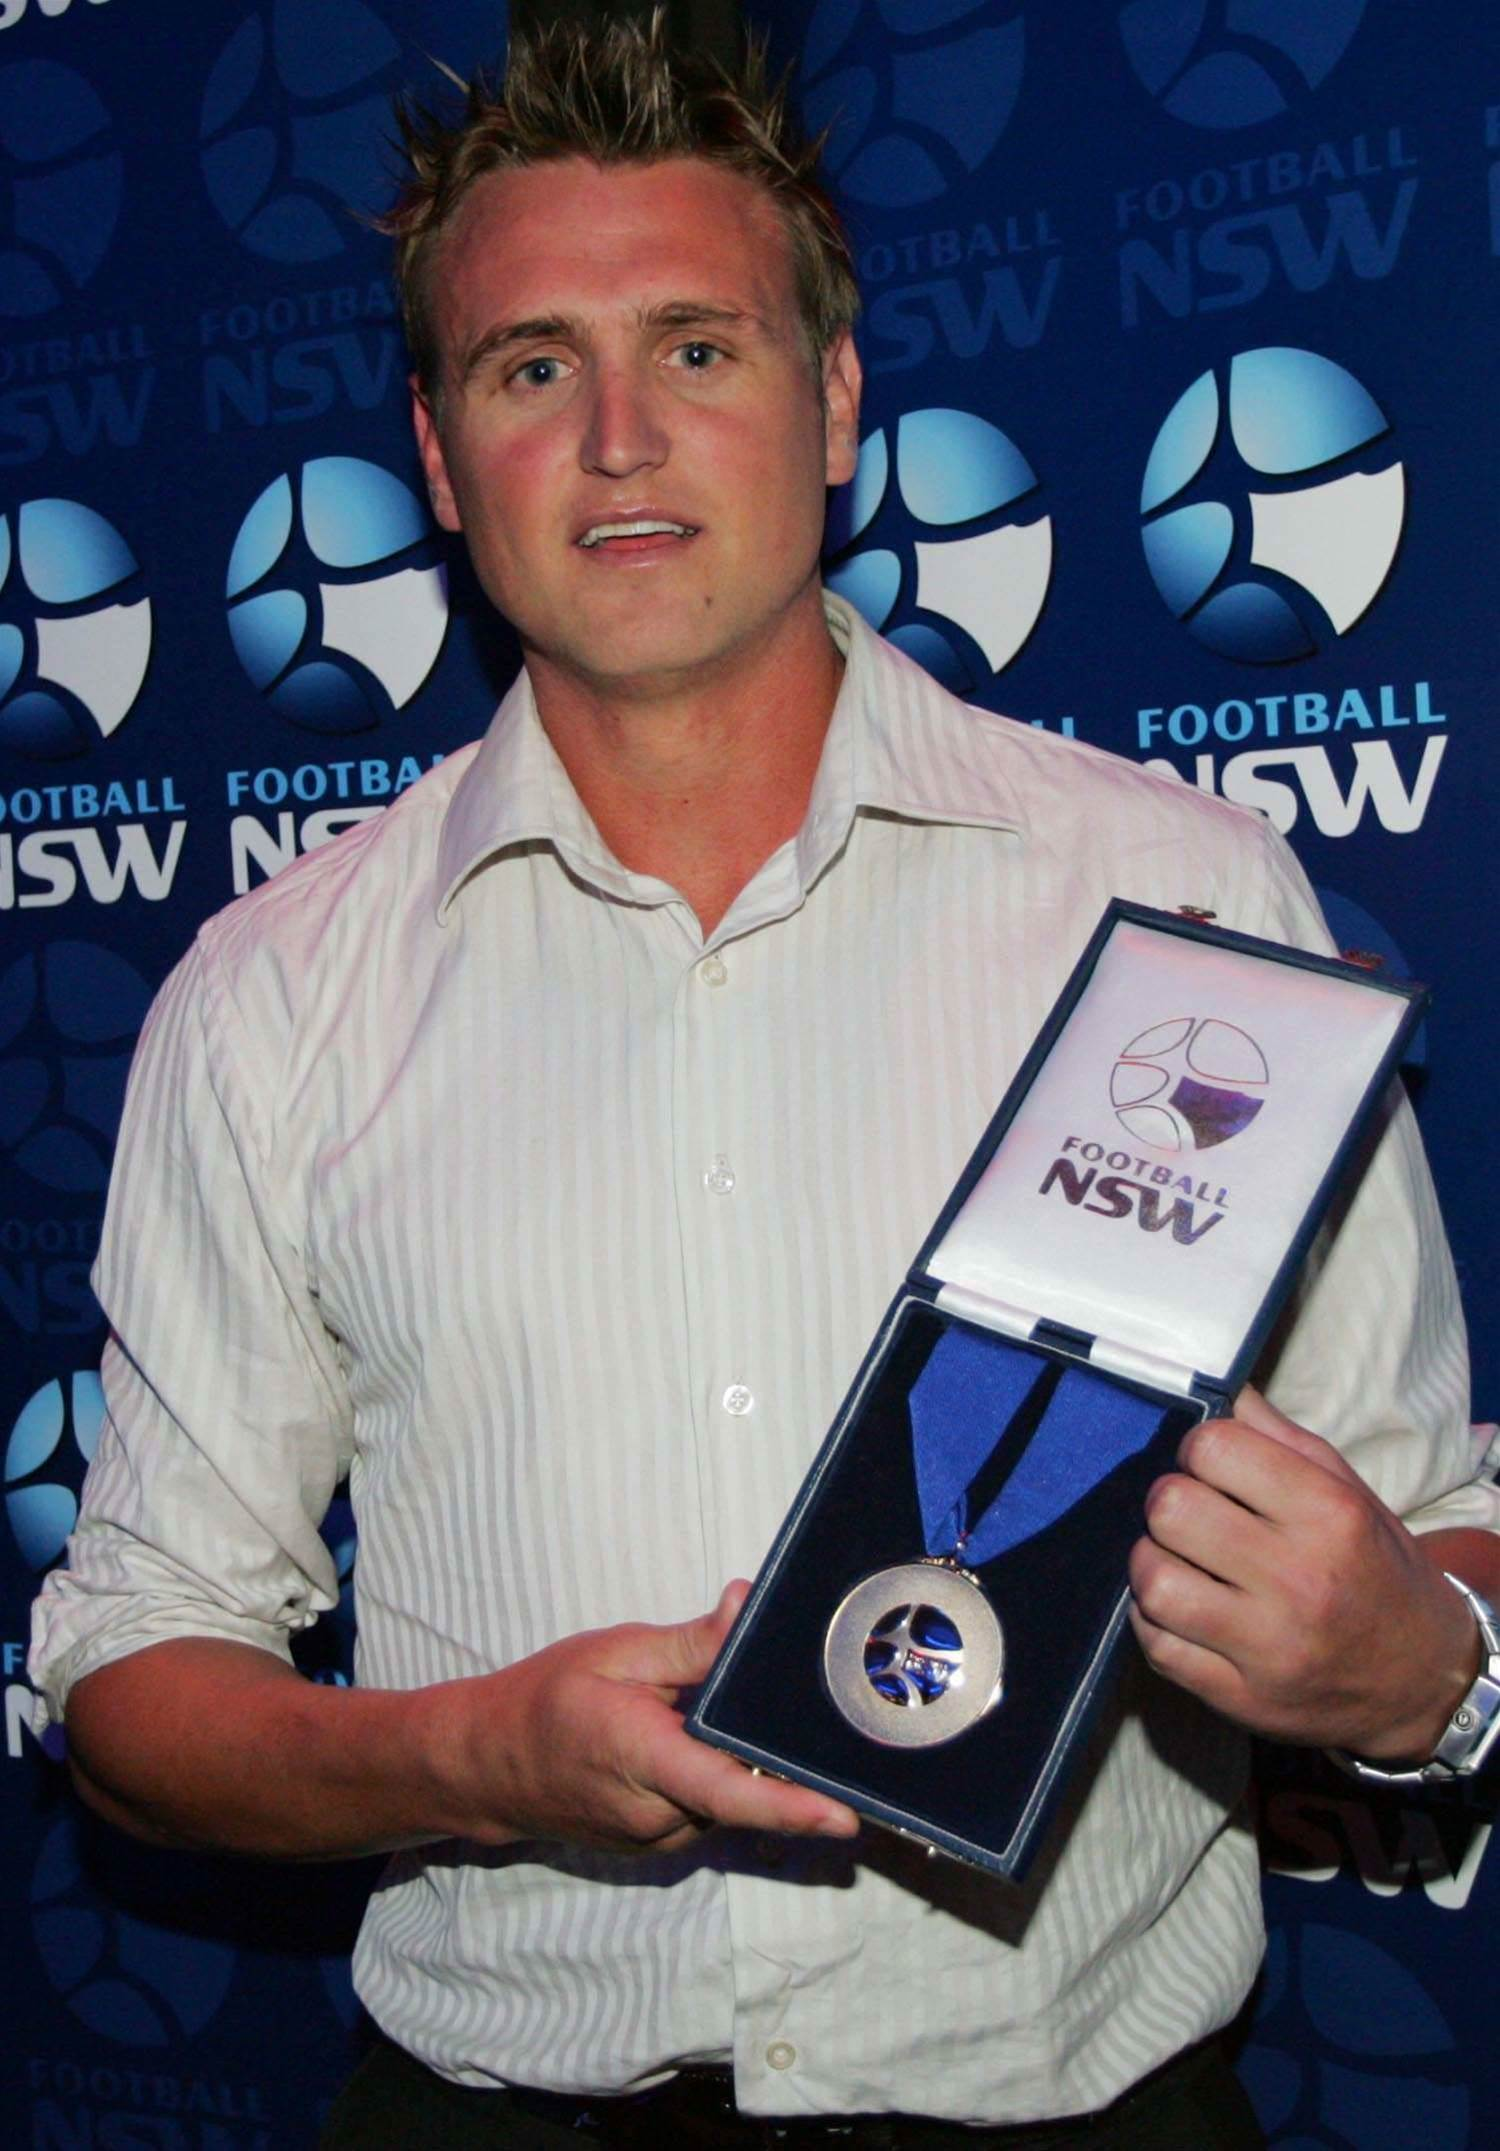 Football NSW Gold Medal Dinner Wrap-Up